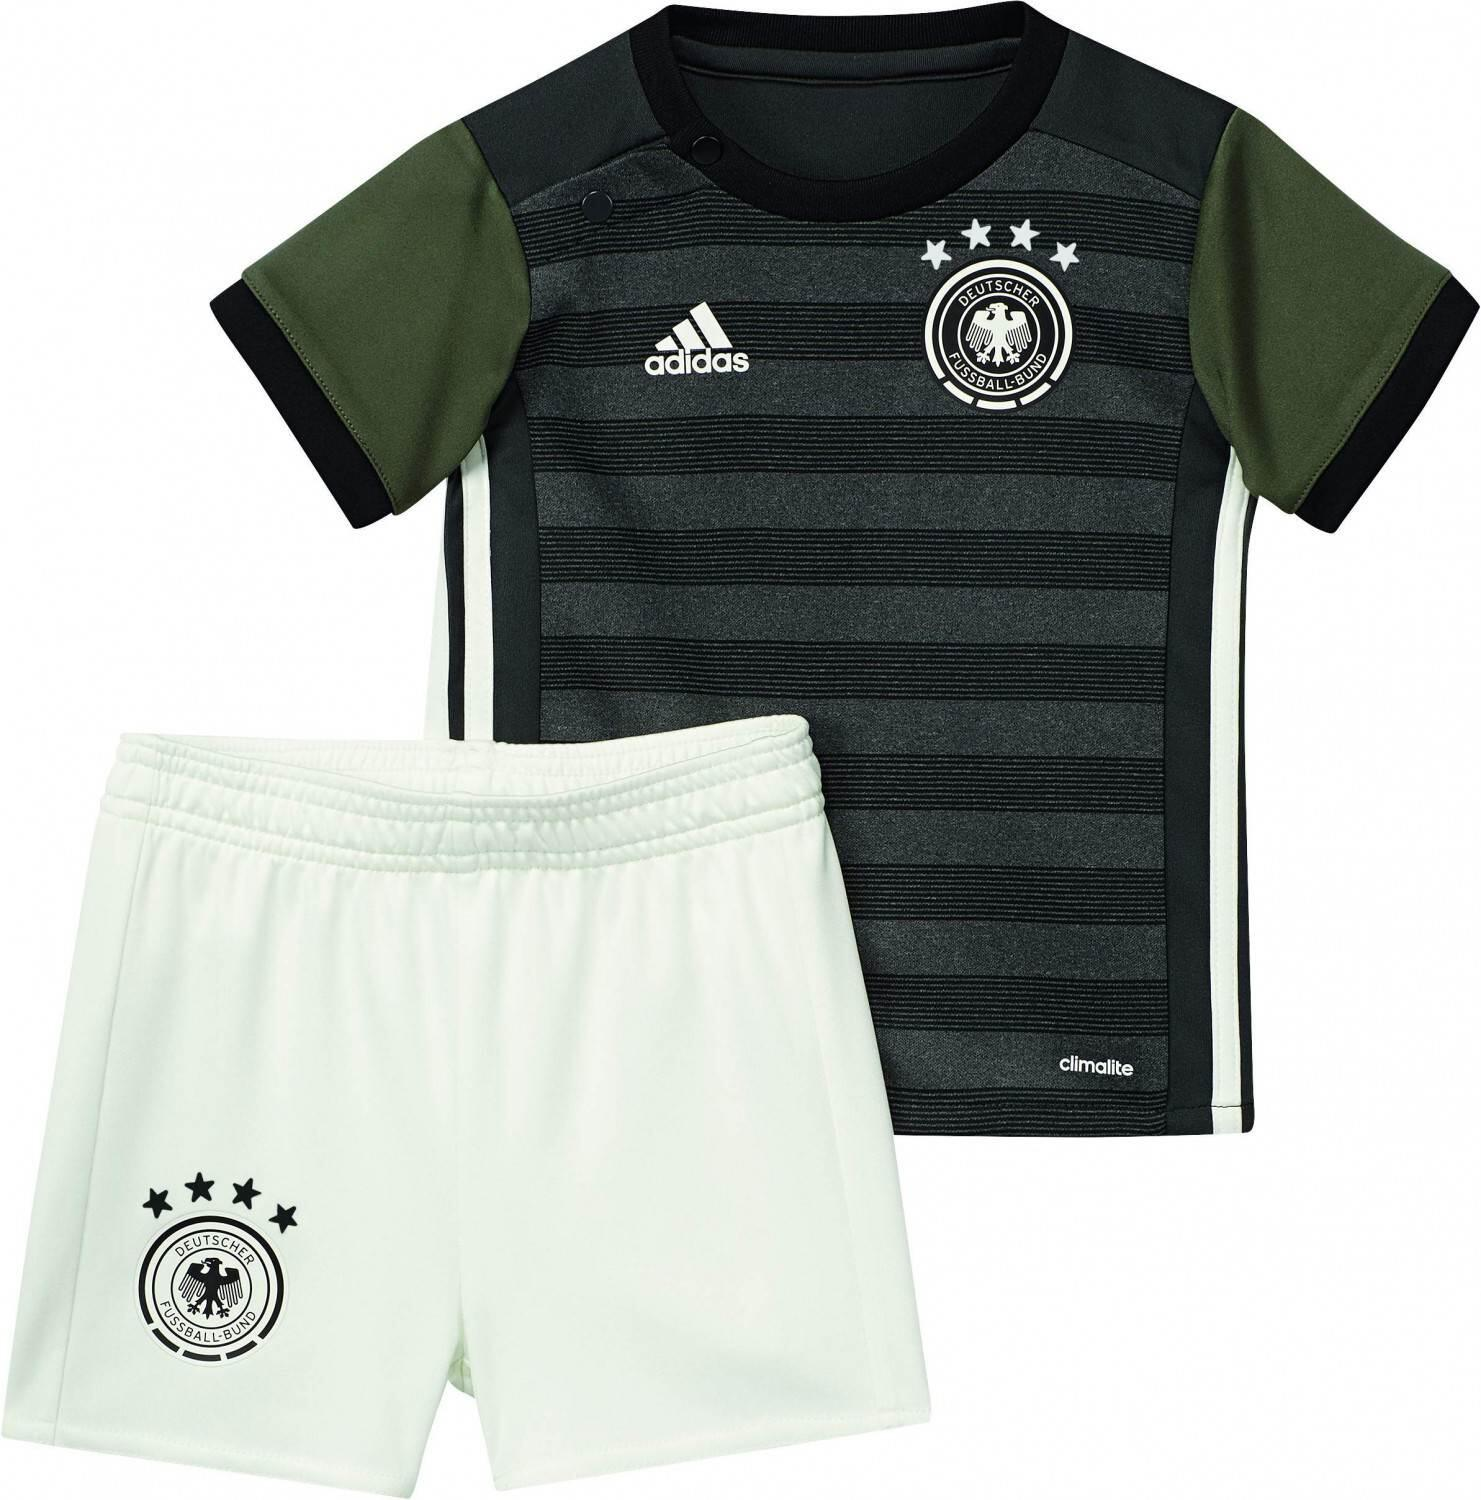 Babysets - adidas DFB Away Baby Kit Auswärtsset (Größe 74, dark grey heather off white base green s15) - Onlineshop Sportolino